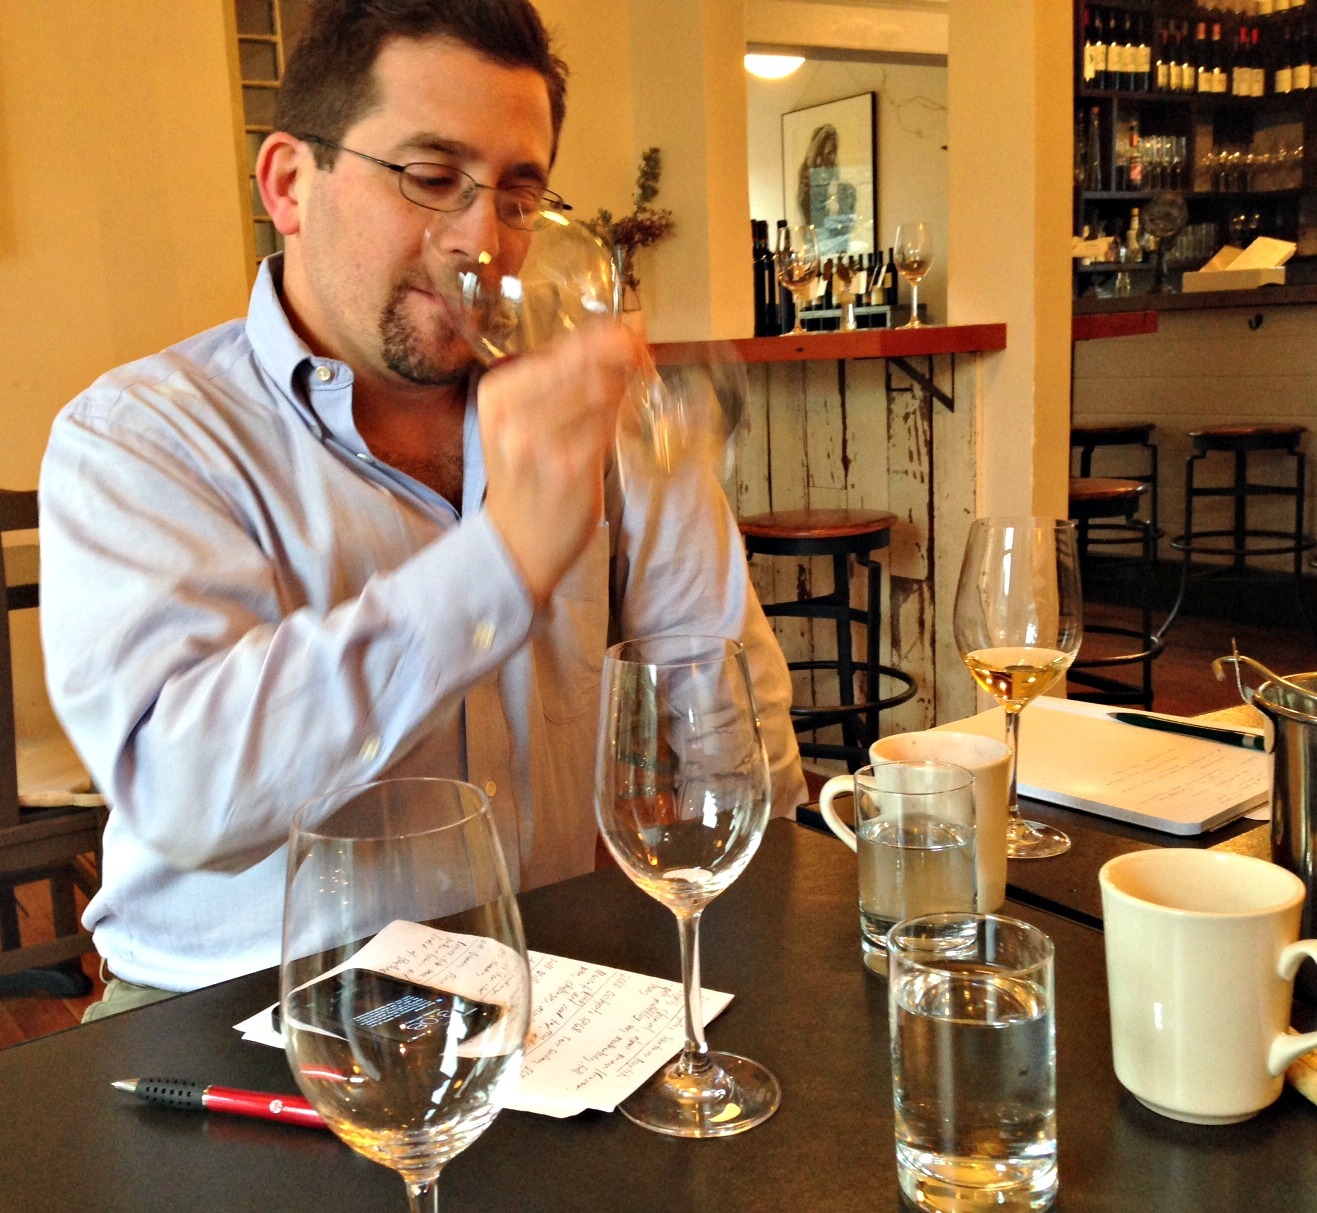 Eric Levine considers the Cru Beaujolais. (Photo: Mónica Guzmán)